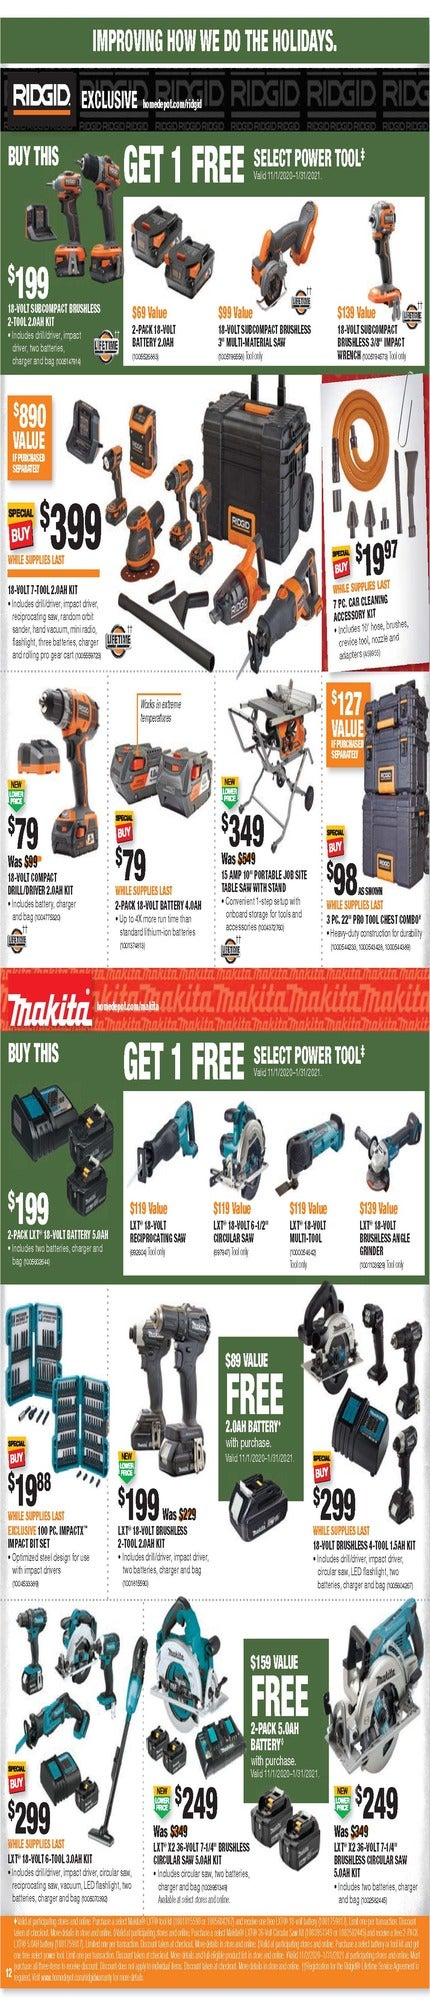 Home Depot Black Friday 2020 Milwaukee Tools Home Depot S Ryobi Early Black Friday Sale Takes Up 35 Off Tools More 9to5toys